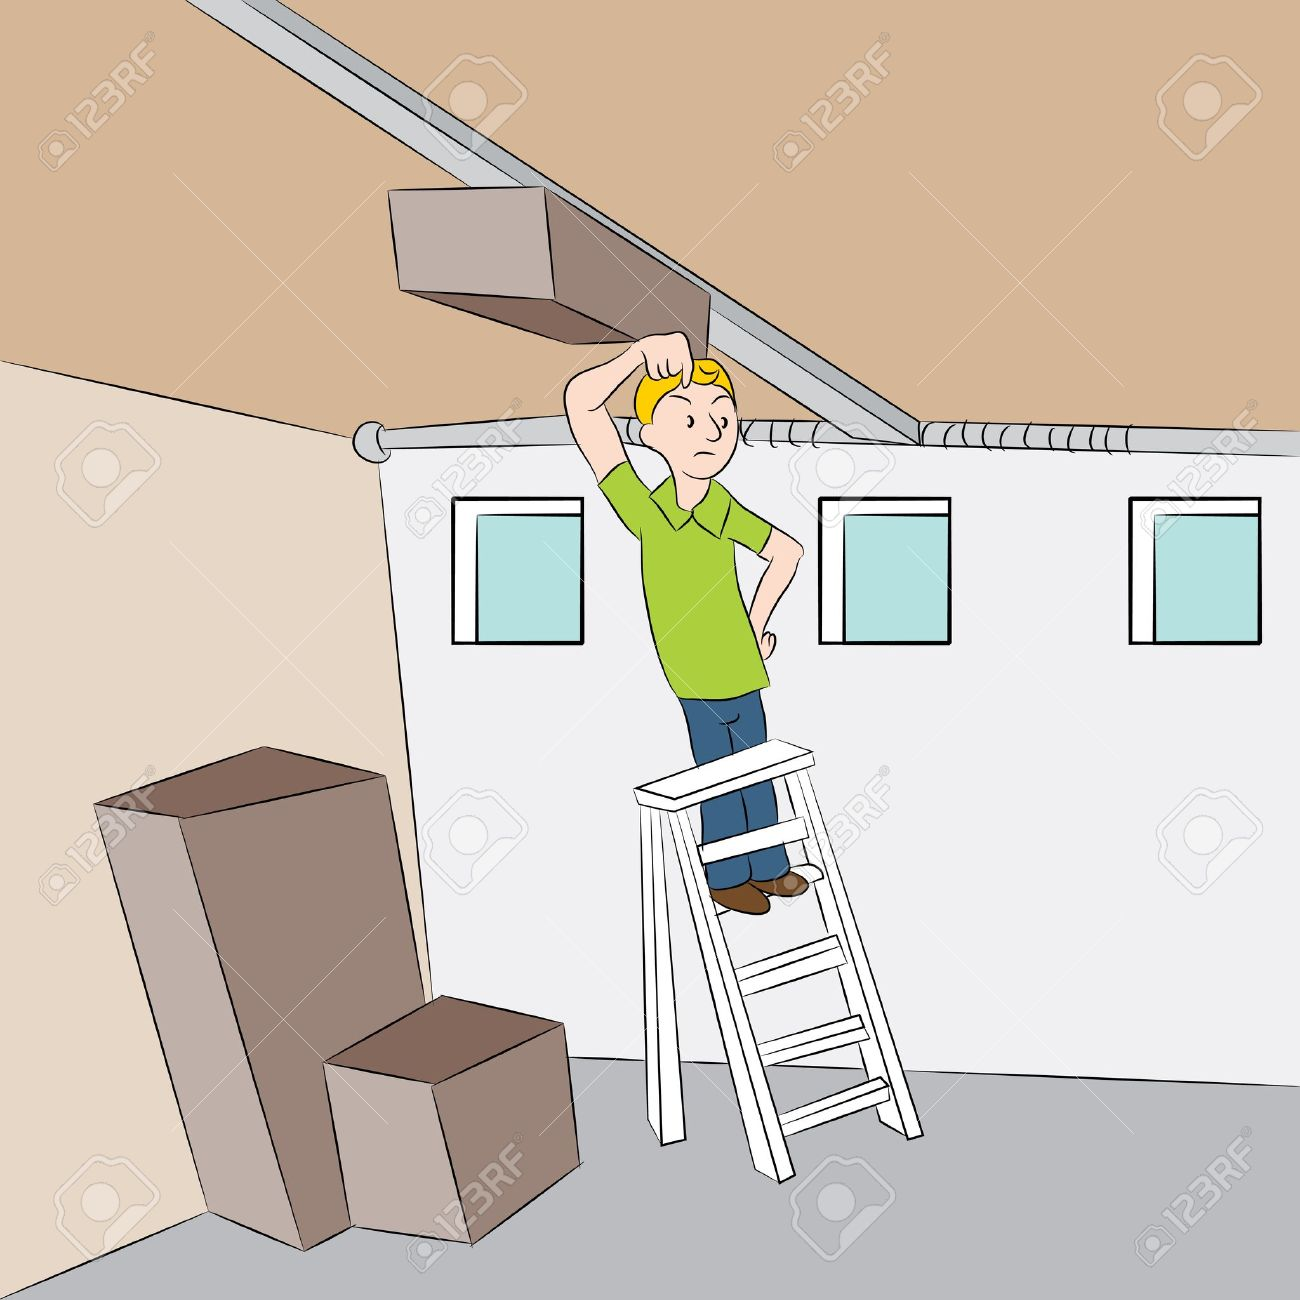 Garage doors clipart - An Image Of A Man Trying To Repair His Garage Door Opener Stock Vector